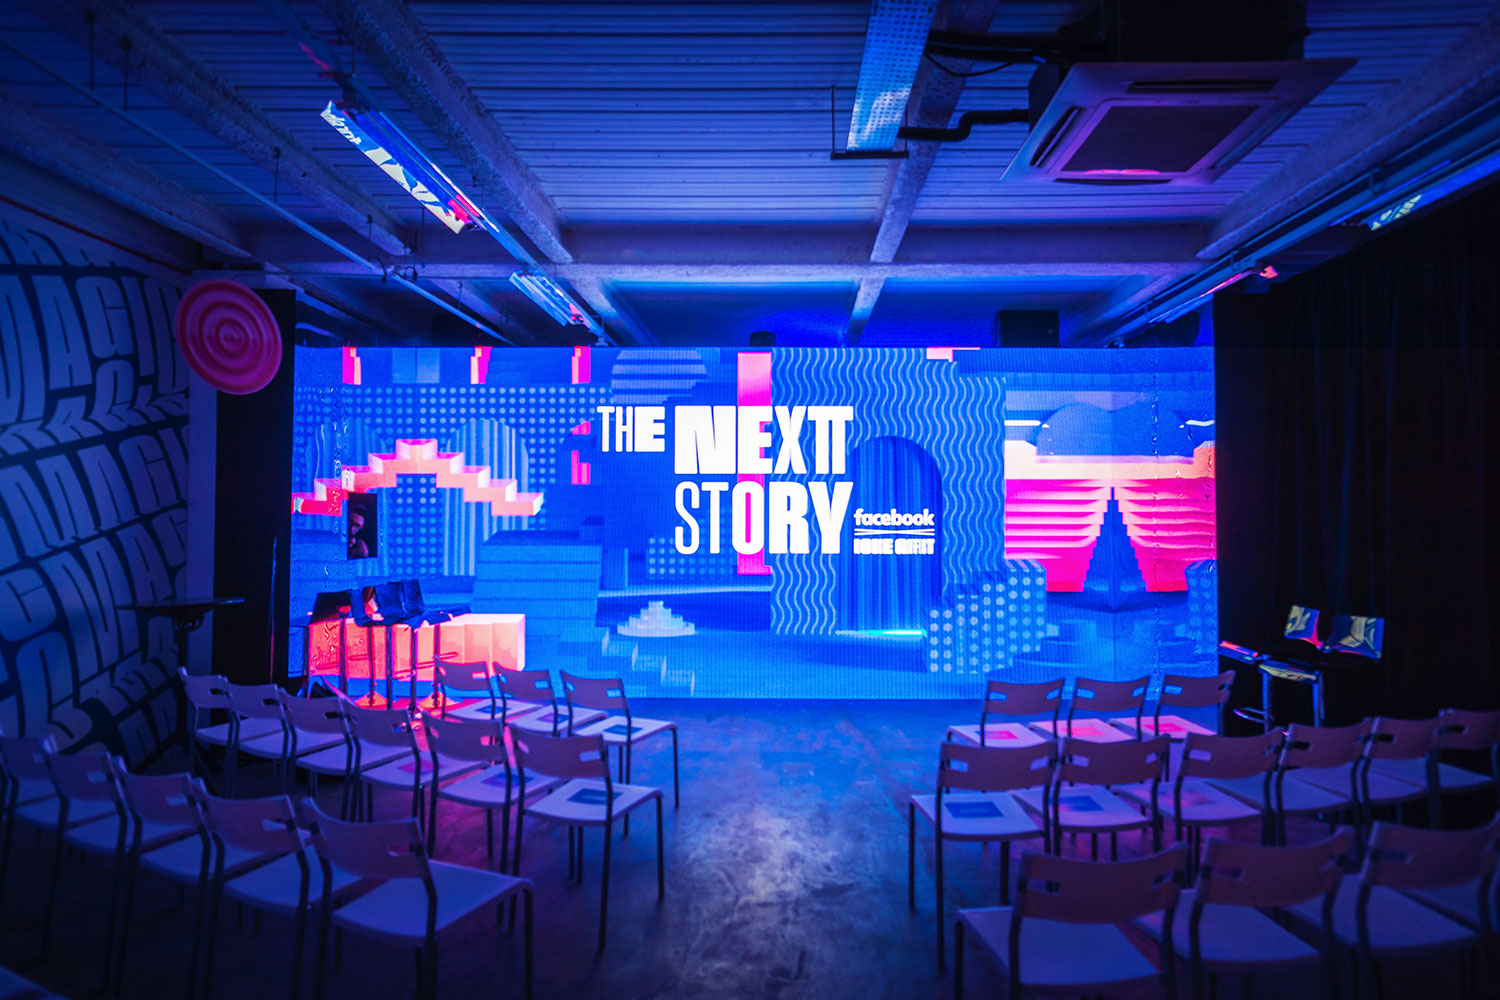 GIF Fest II 2019 festival branding identity - Industry Night with introduction by Facebook, Singapore. Photography by BÜRO UFHO.